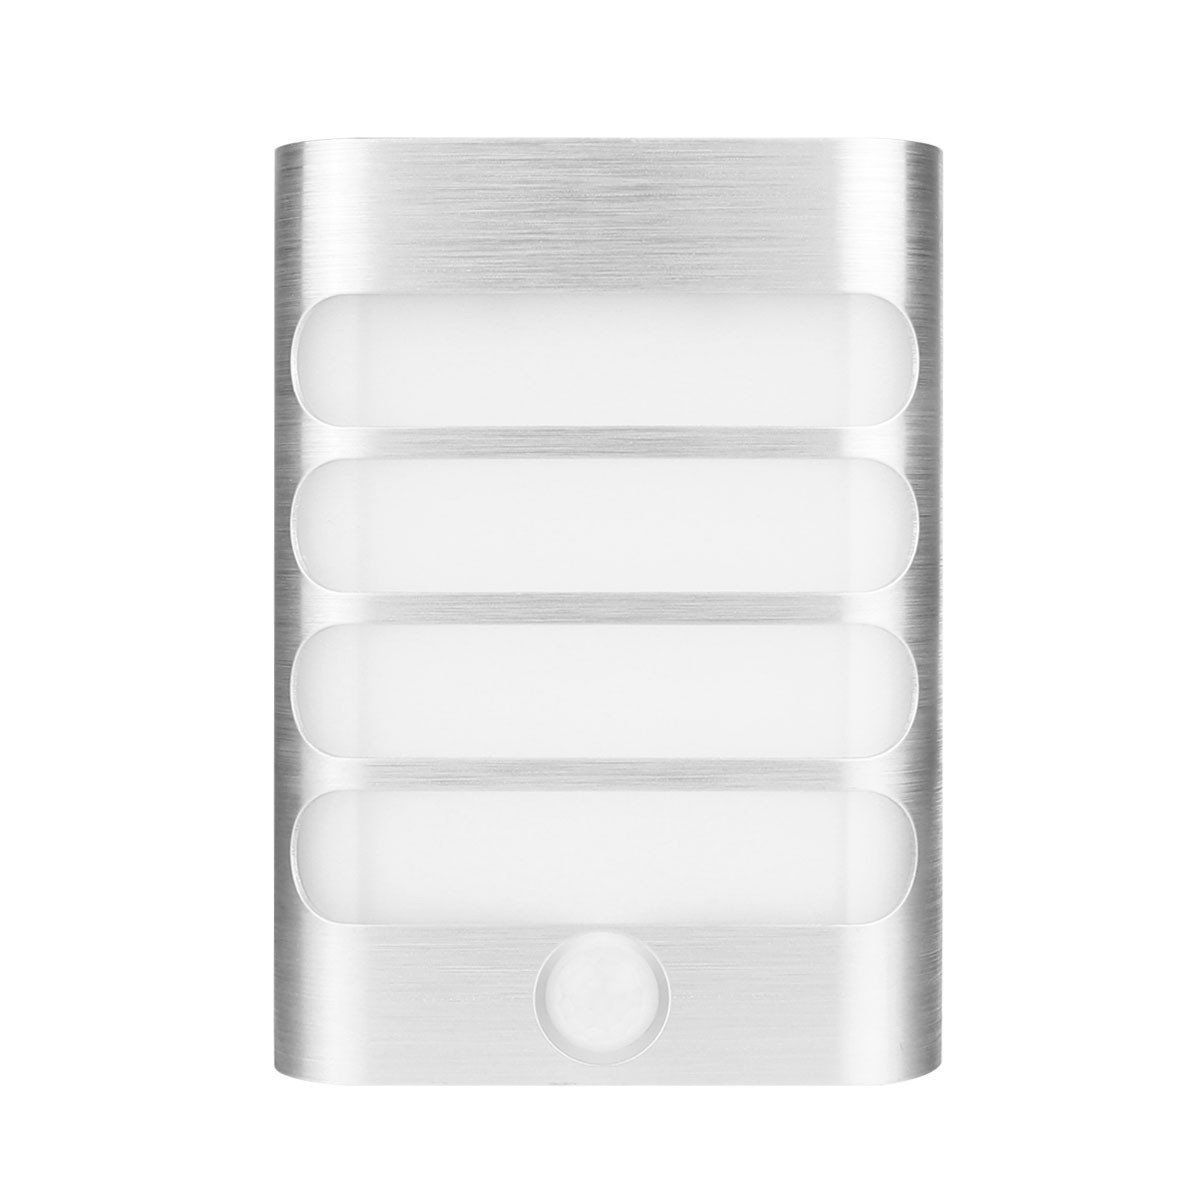 Rechargeable Motion Sensor Led Wall Lamp Wireless Warm White Night Light Auto On Off For Hallway Pathway Staircase Wall Deco Escalier Led Deco